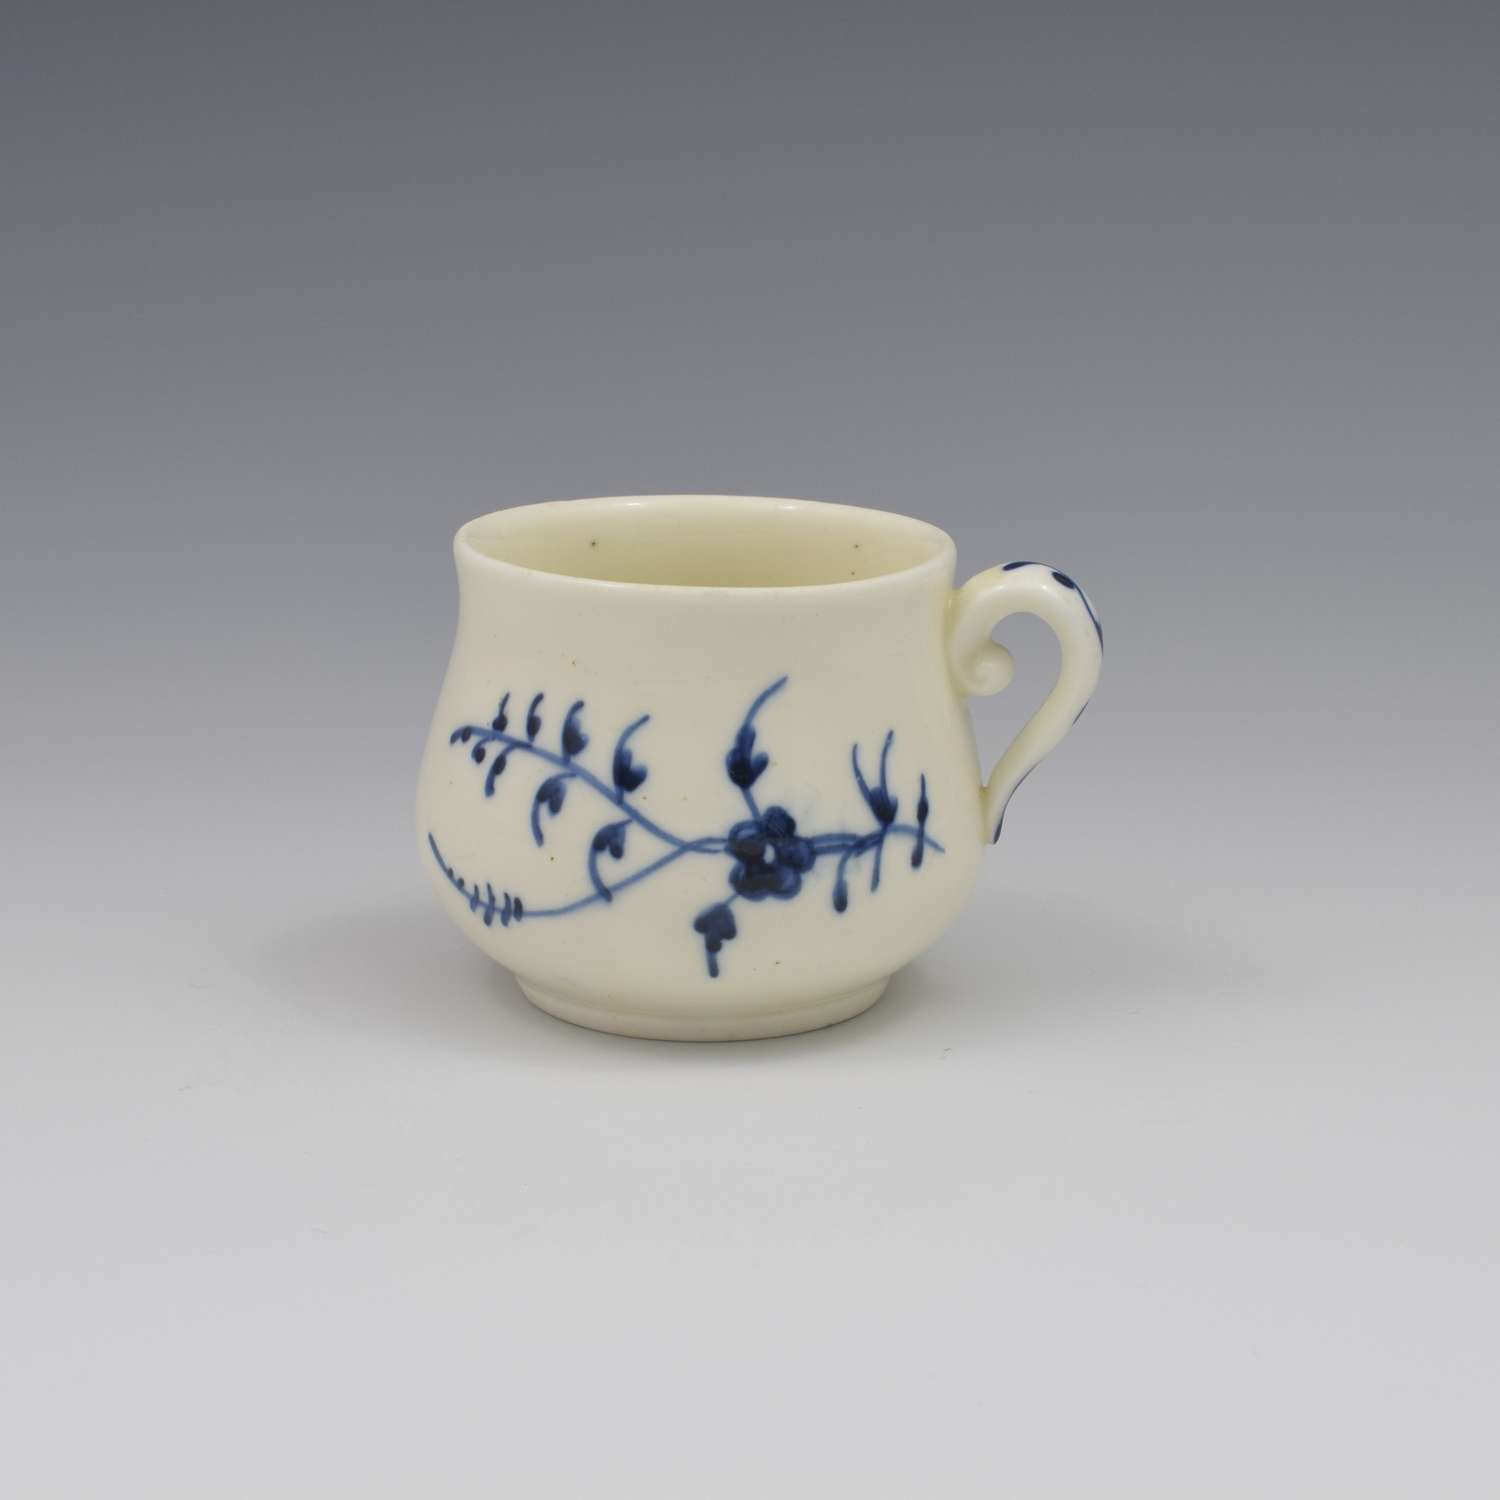 French Chantilly Soft Paste Porcelain Custard Cup c.1750